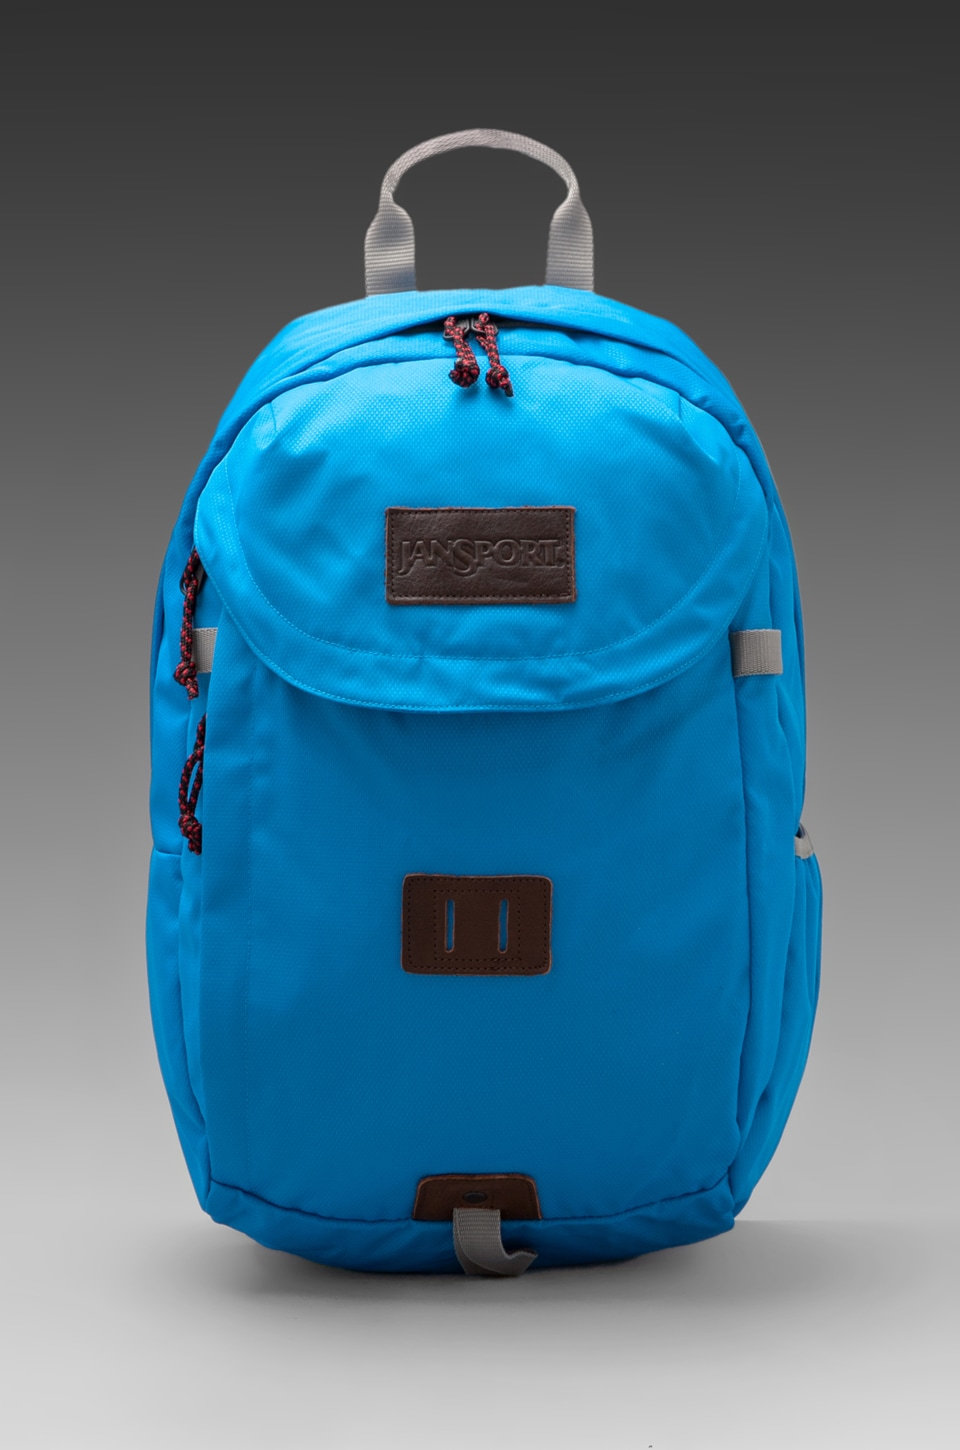 Jansport Flare Backpack in Swedish Blue